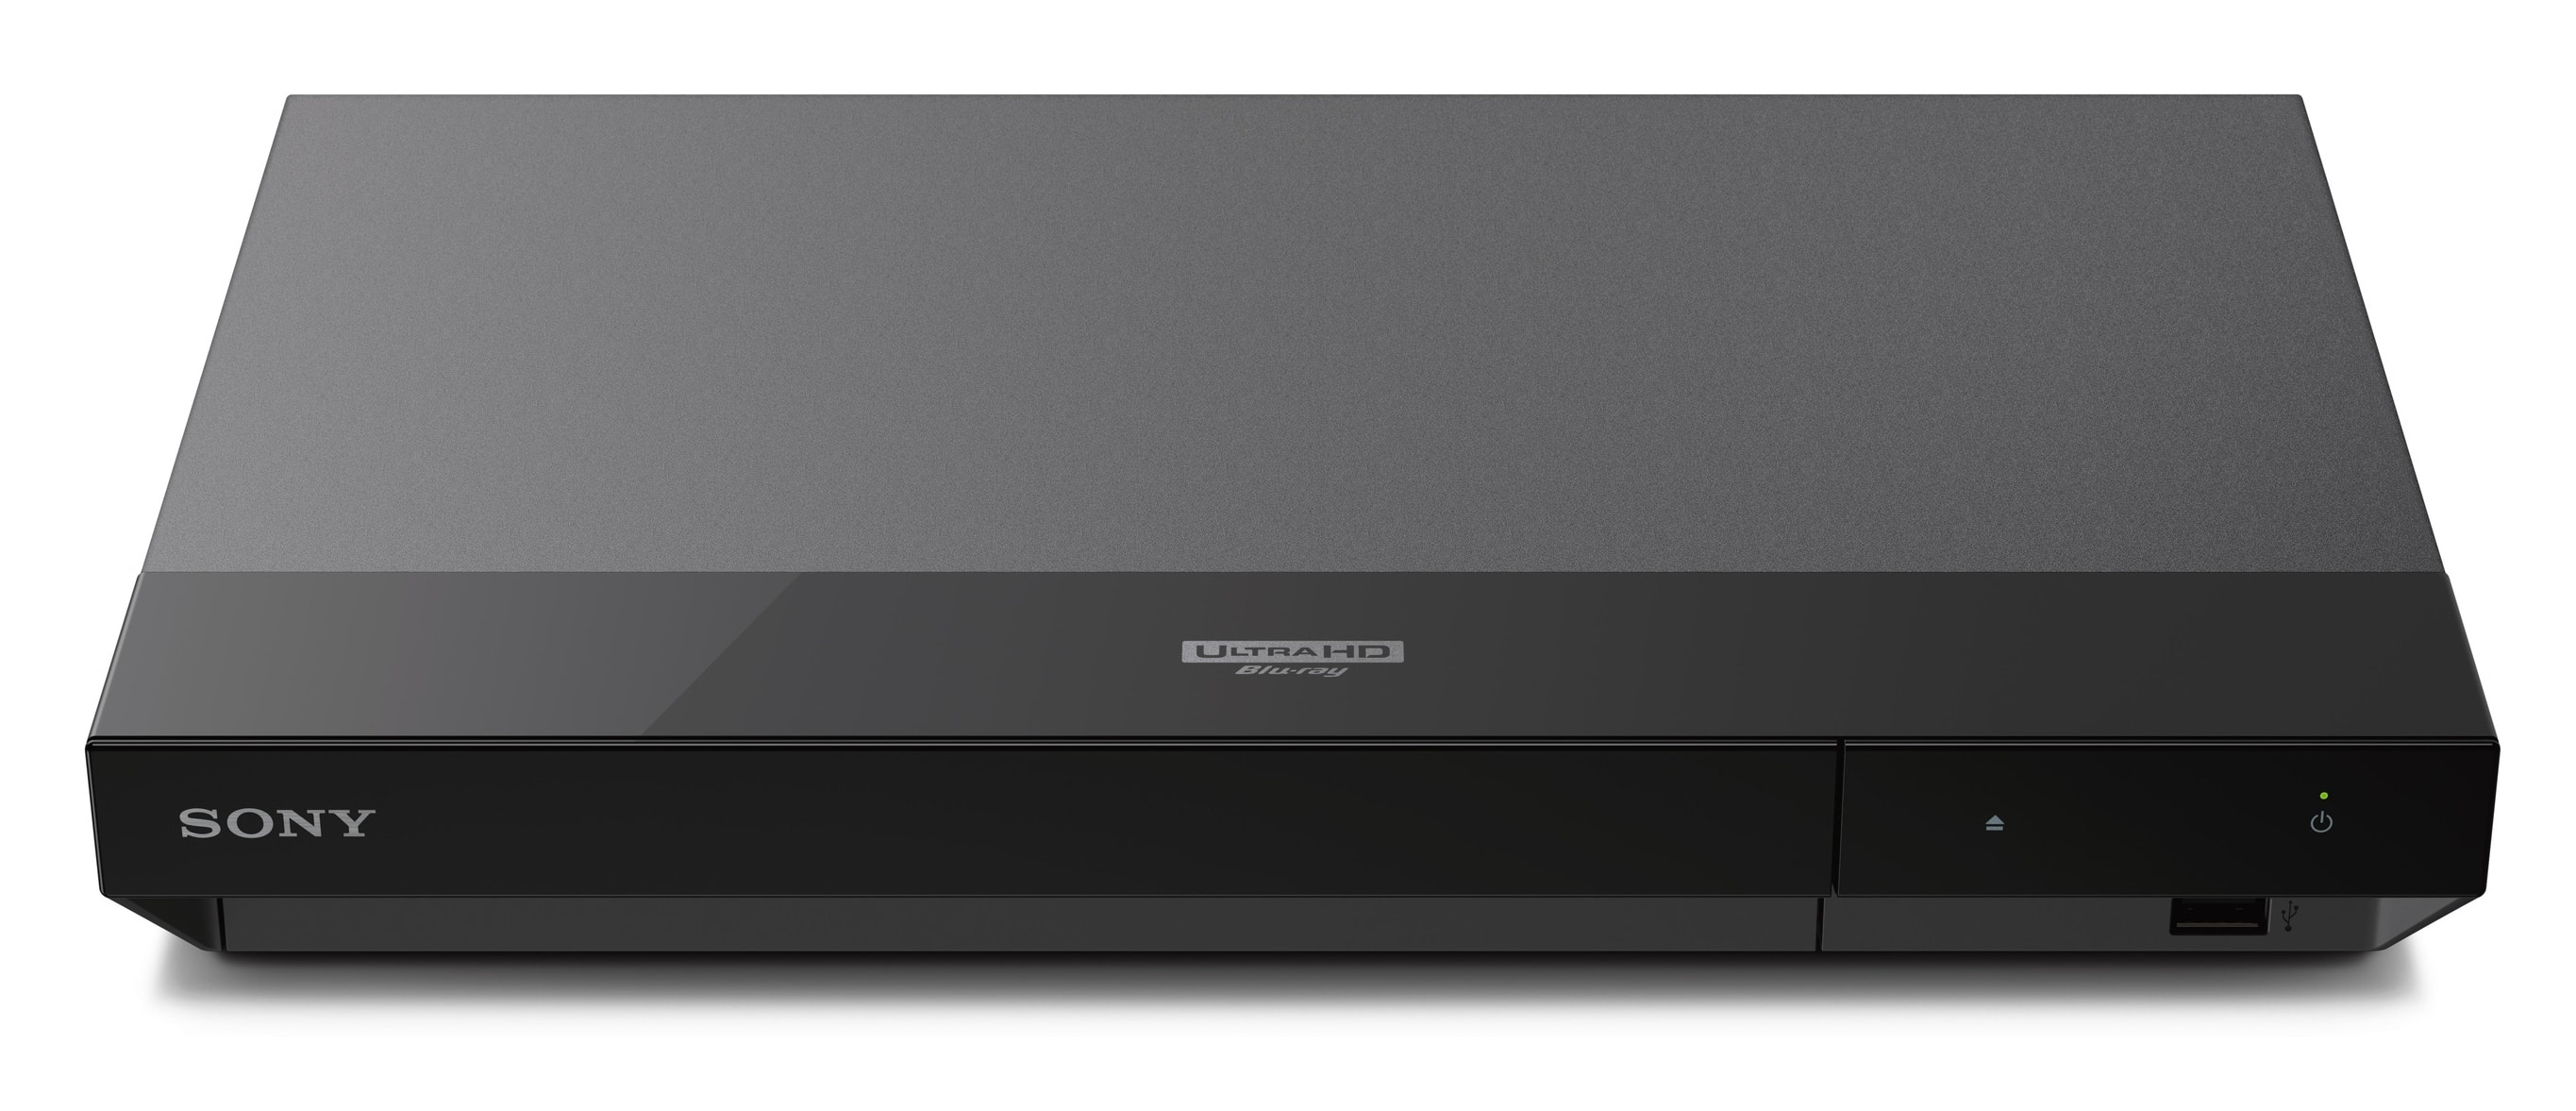 Sony UBP-X700 4K Ultra HD Blu-ray Player 3D WiFi für 189,00 Euro